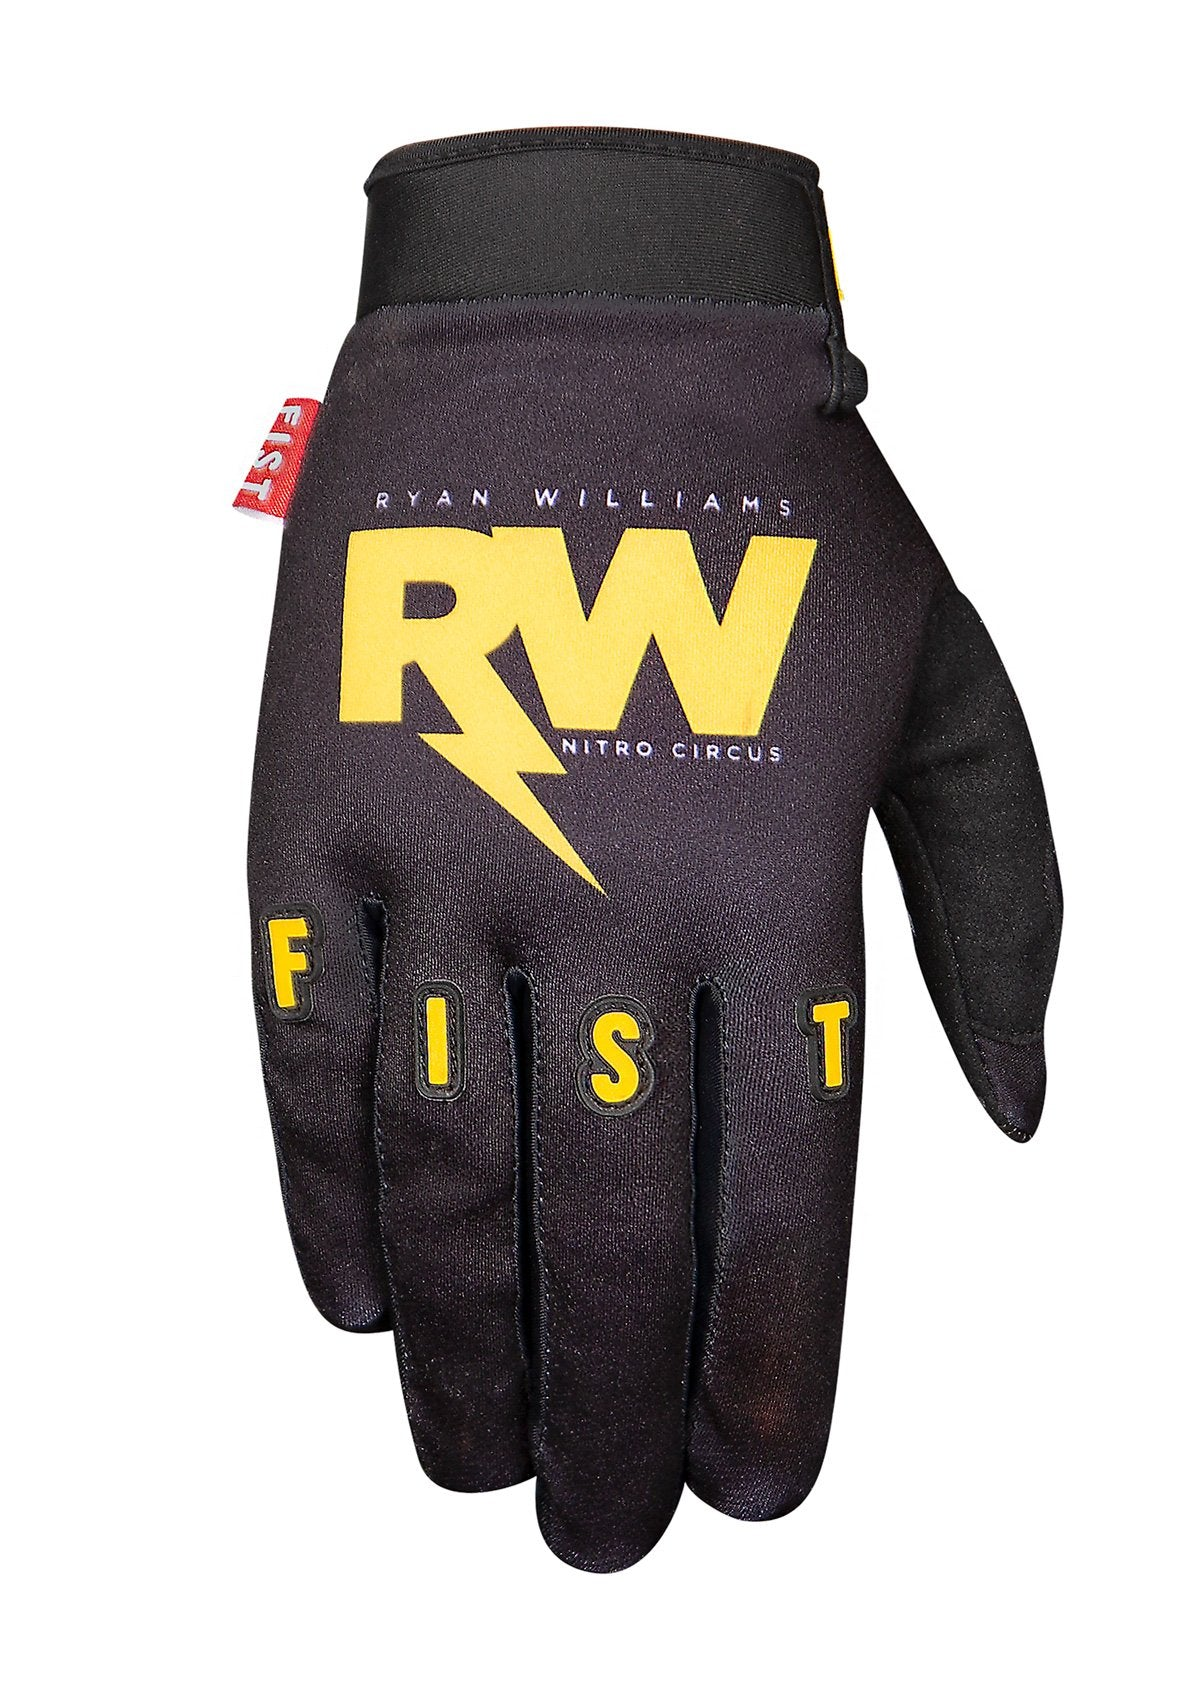 Youth Fist Nitro Circus RWILLY Glove